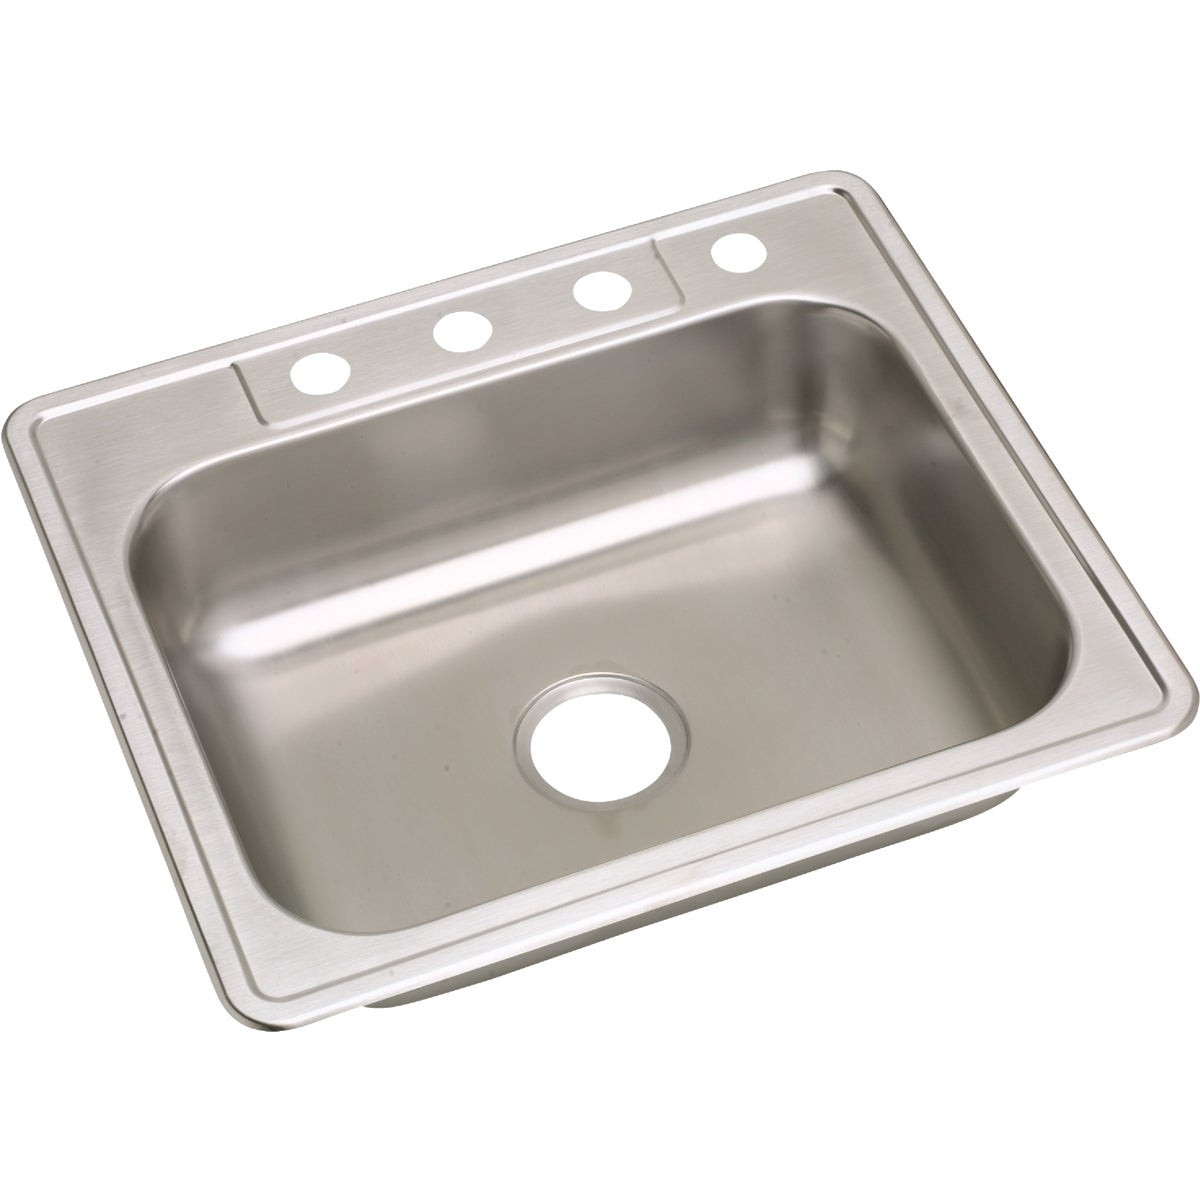 "6"" SS SINGLE-BOWL SINK - NE25224 by Elkay Neptune"